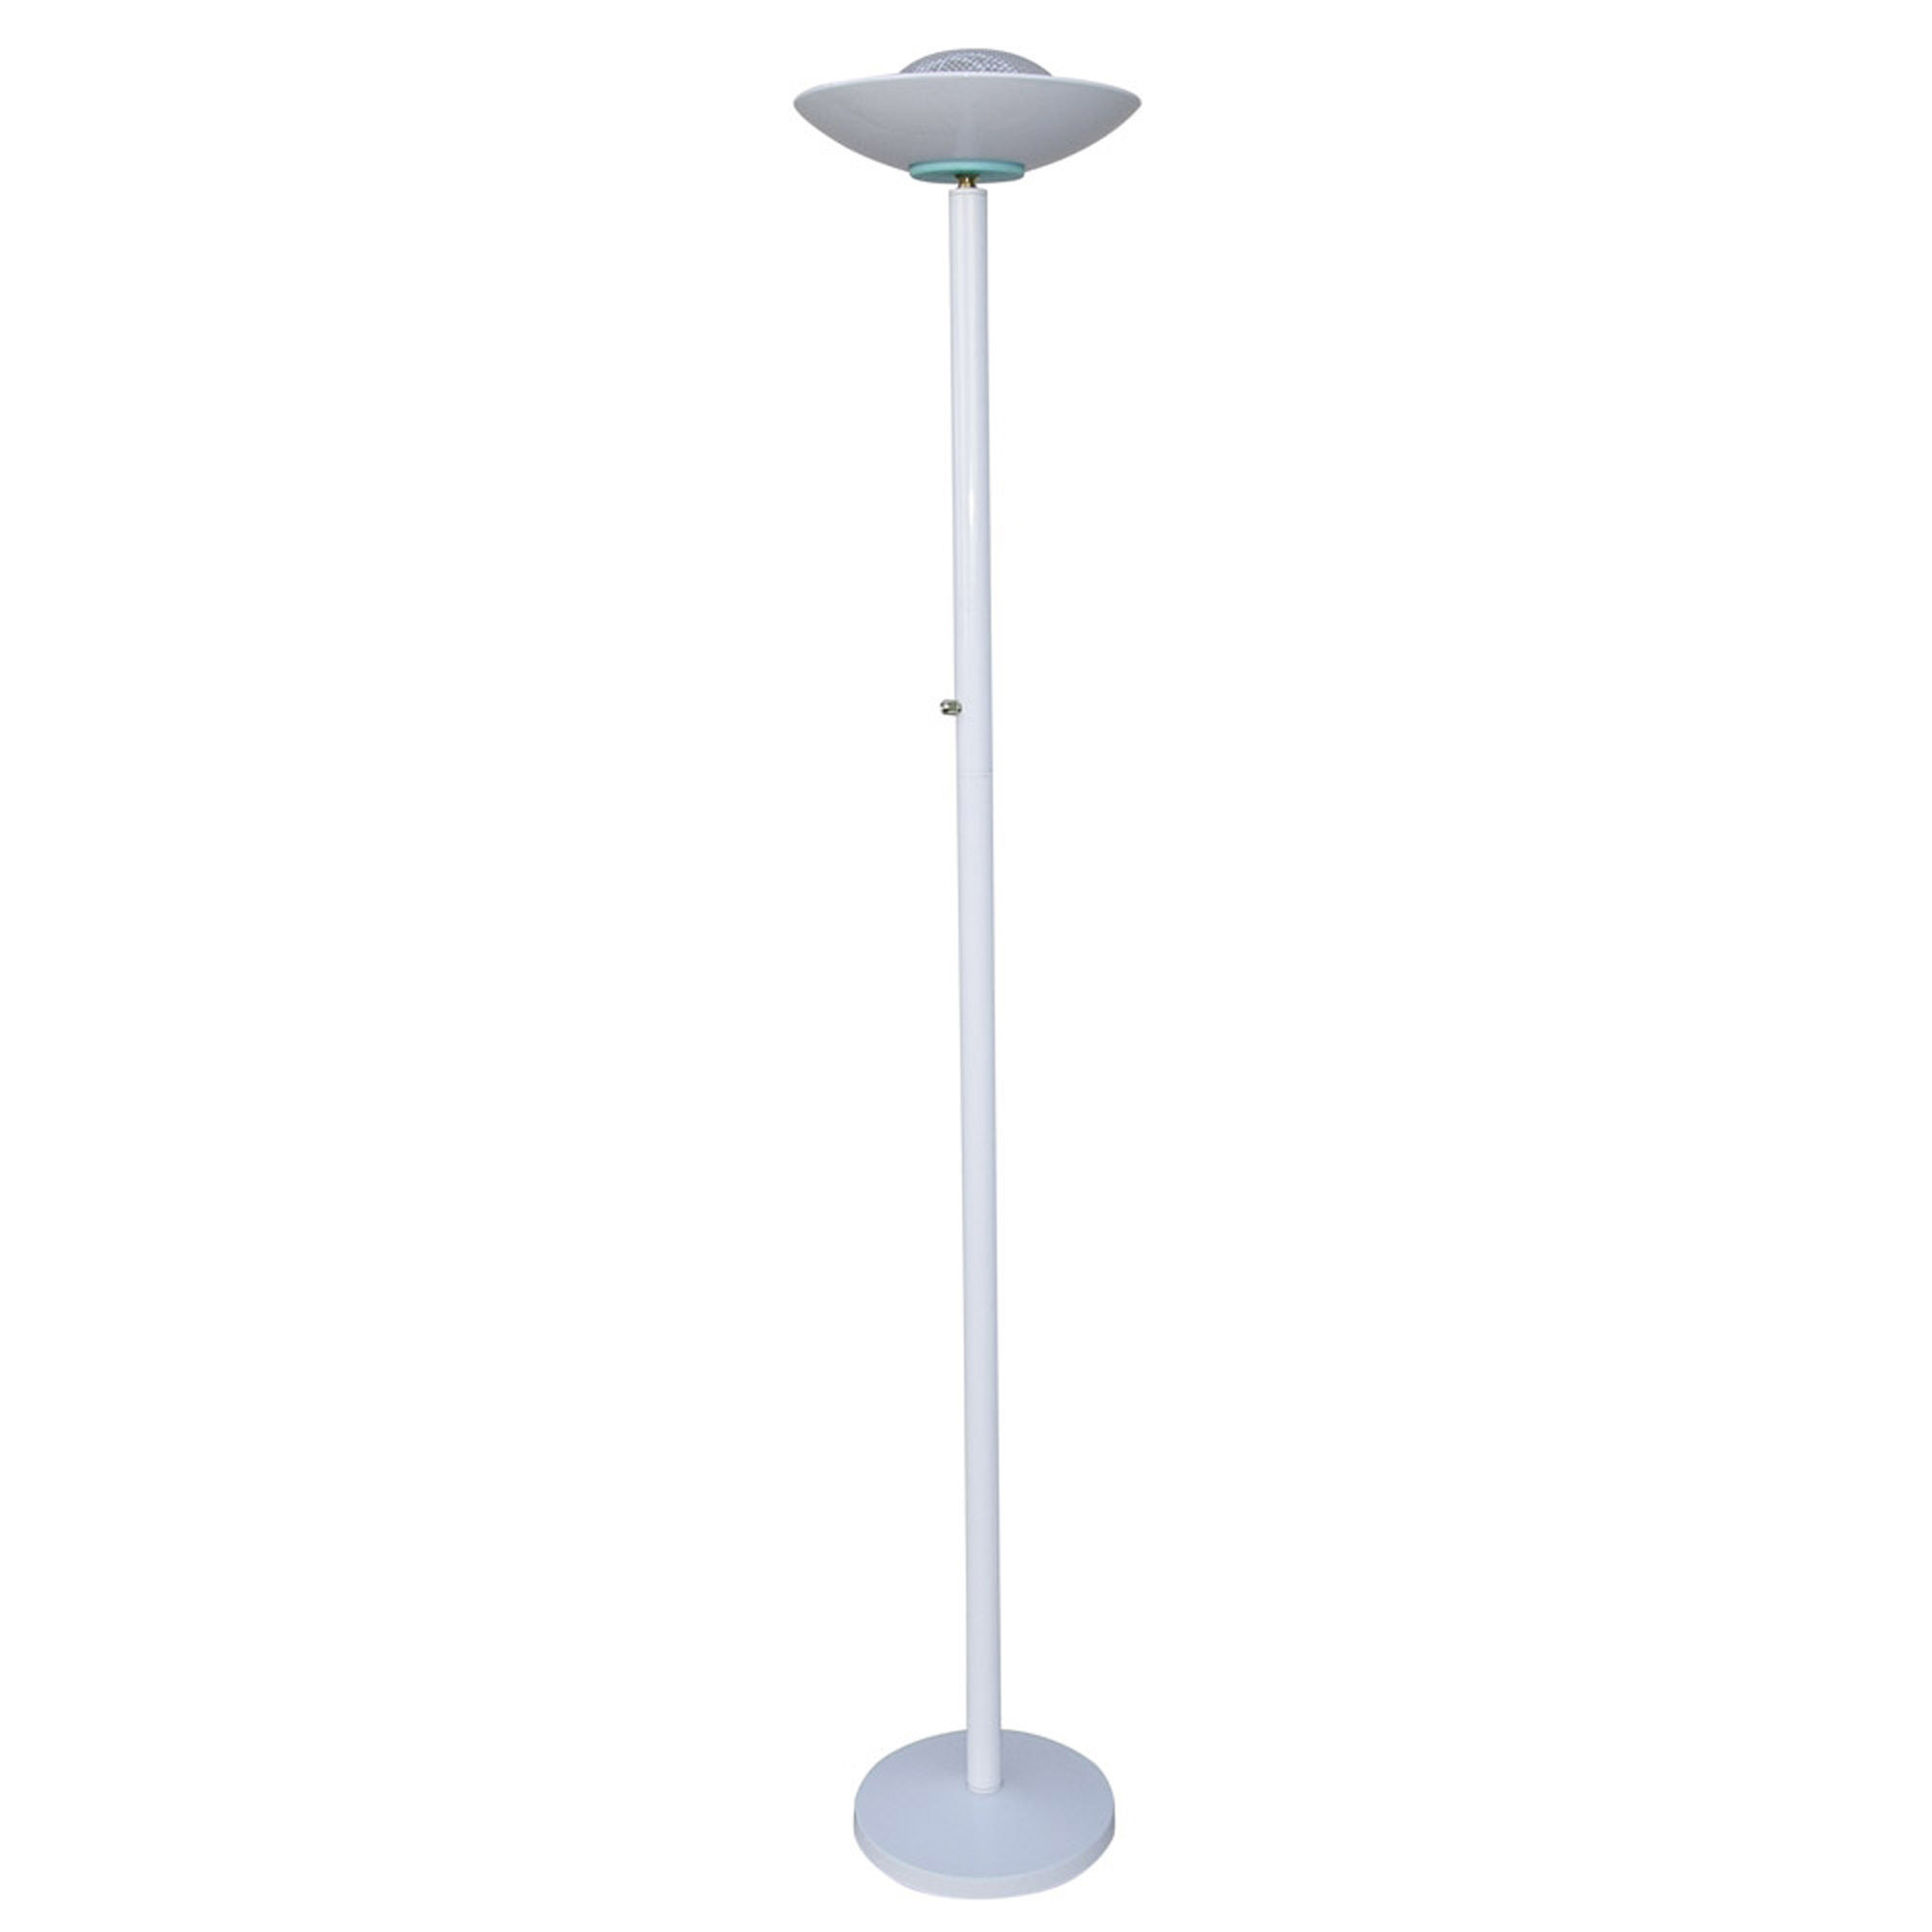 69 5 Quot Tall Metal Halogen Torchiere Floor Lamp With Finish